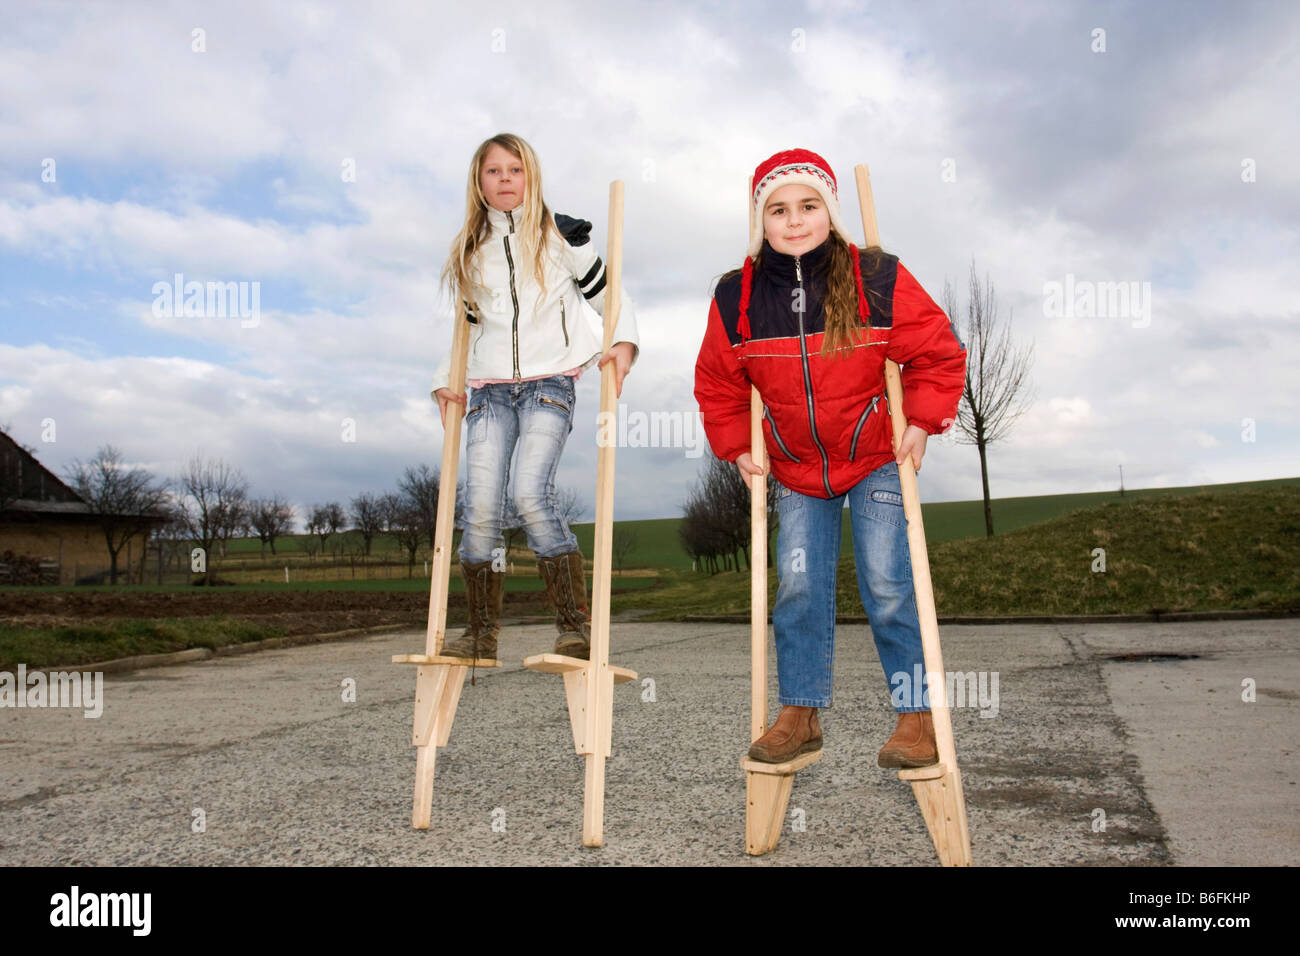 Little girls, 11 and 10 years old, on stilts, outside Stock Photo